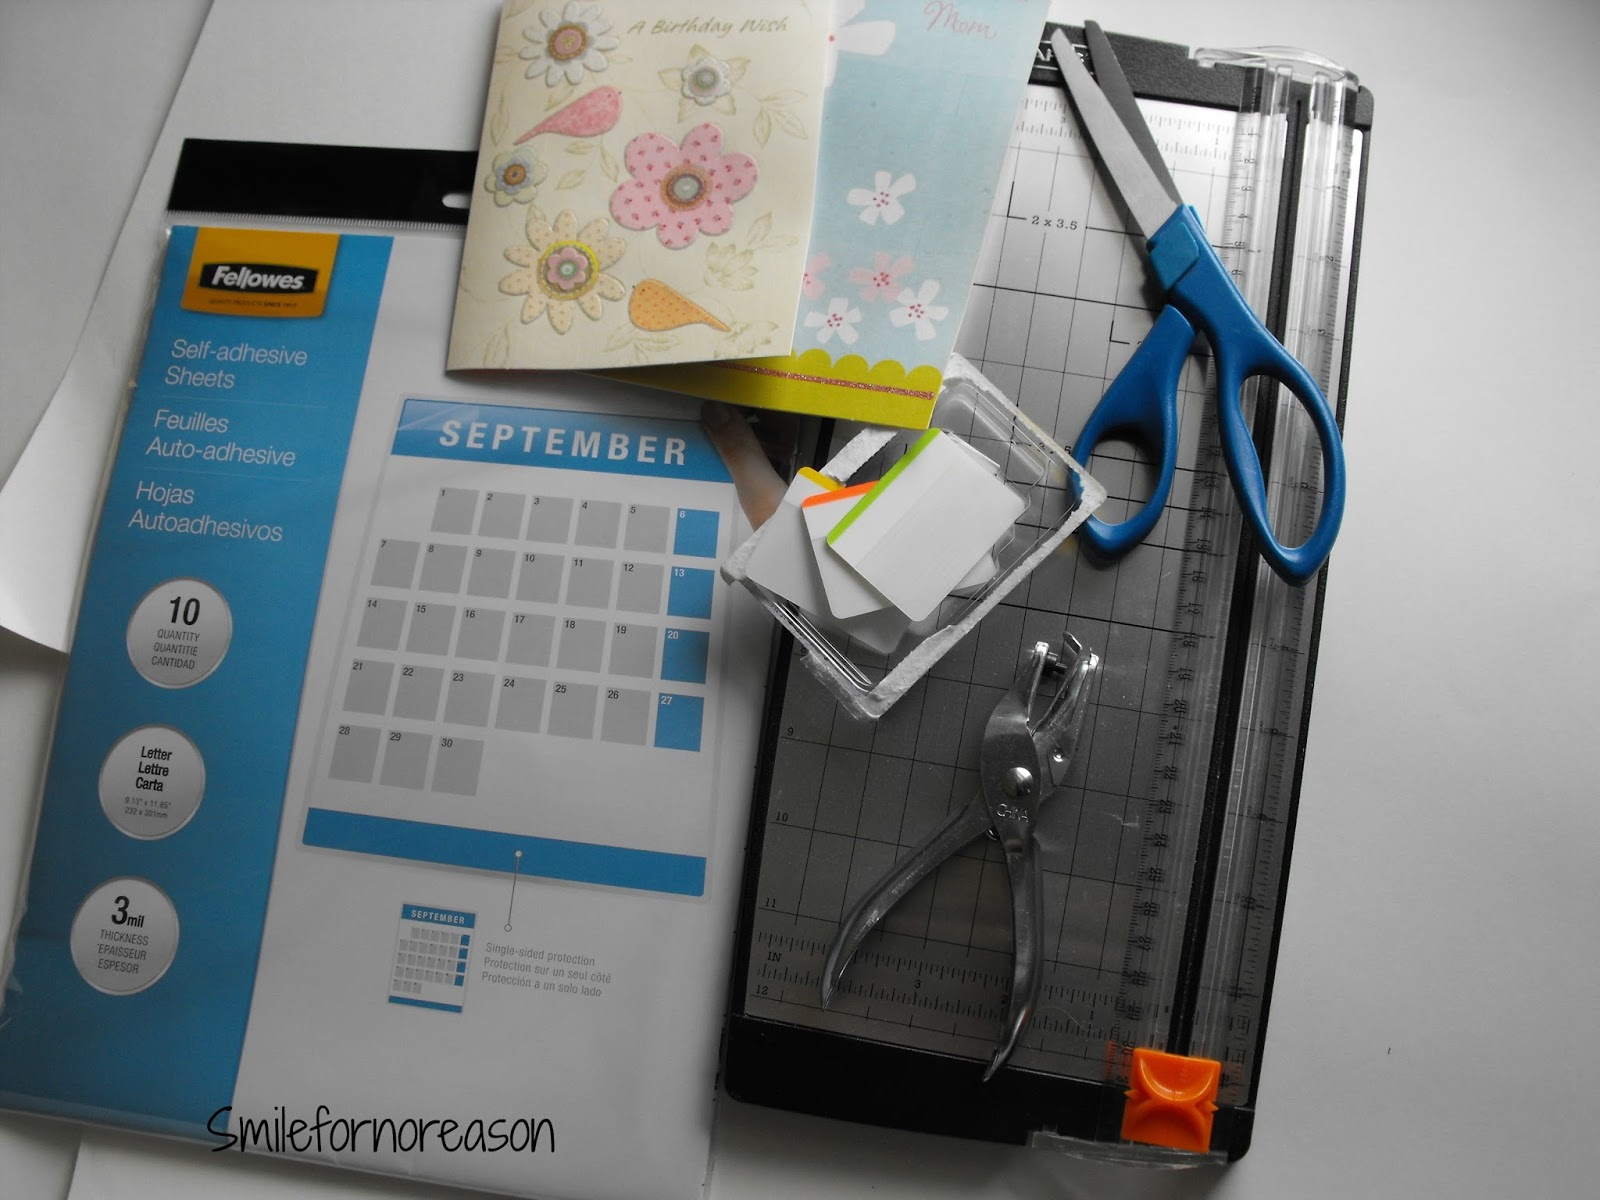 Smile For No Reason Greeting Card Dashboards For Your Spiral Bound